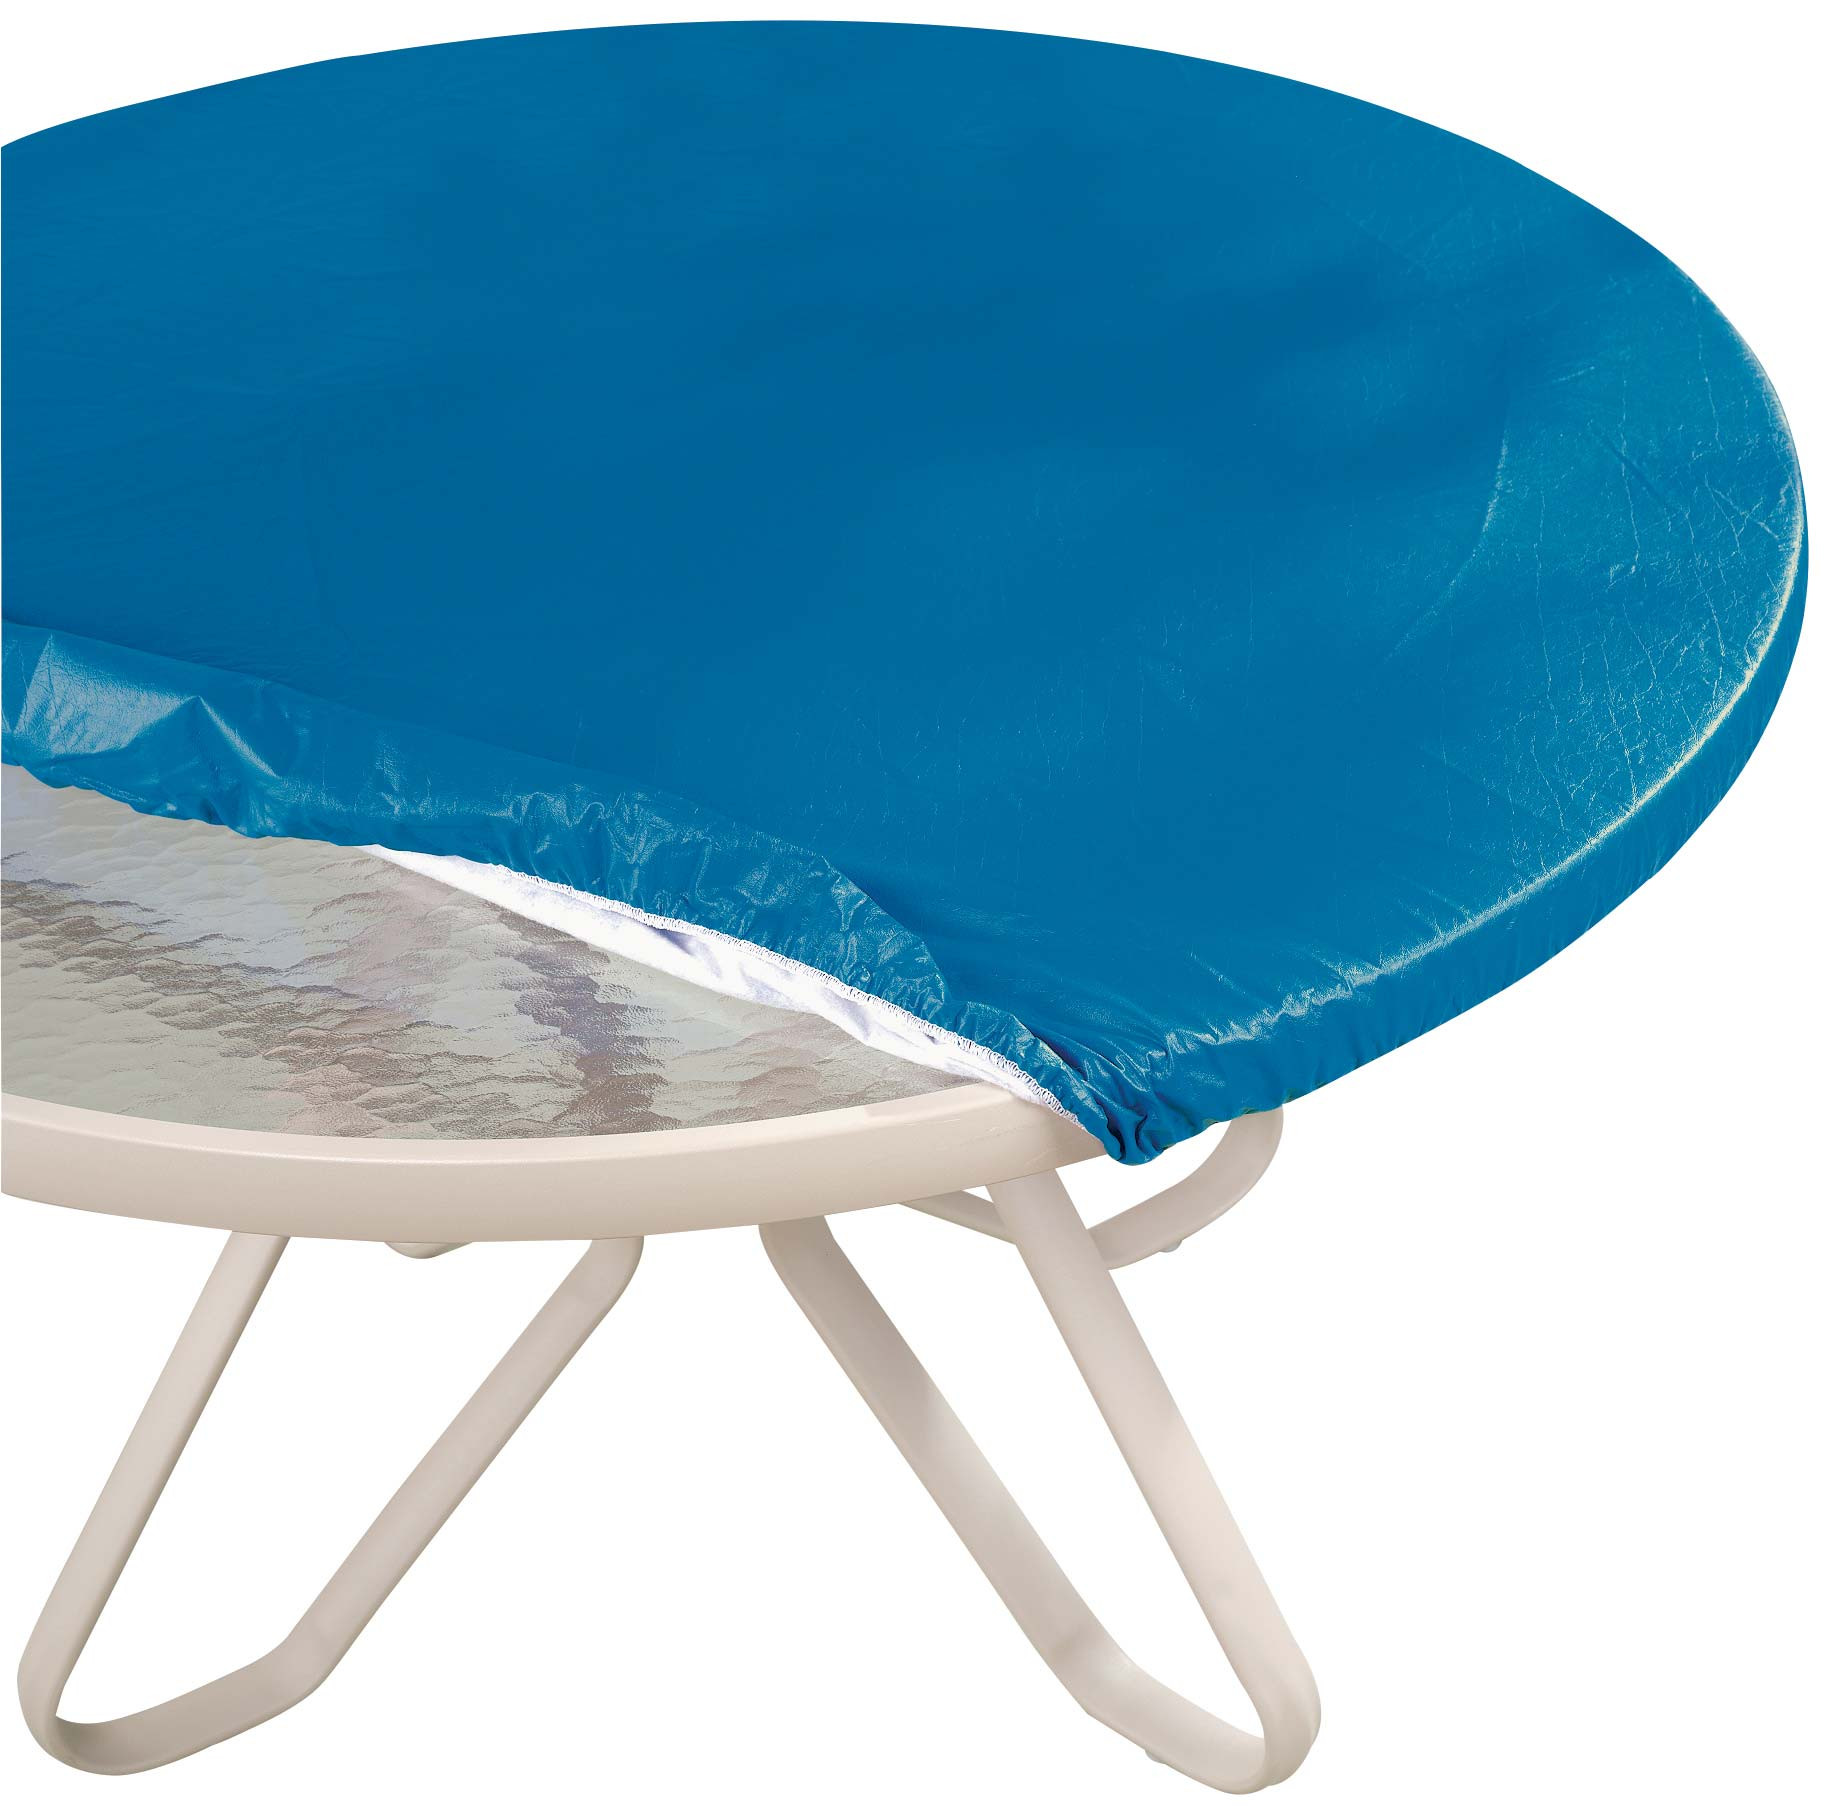 Best ideas about Patio Table Cover . Save or Pin Elasticized Patio Table Cover by Miles Kimball Now.